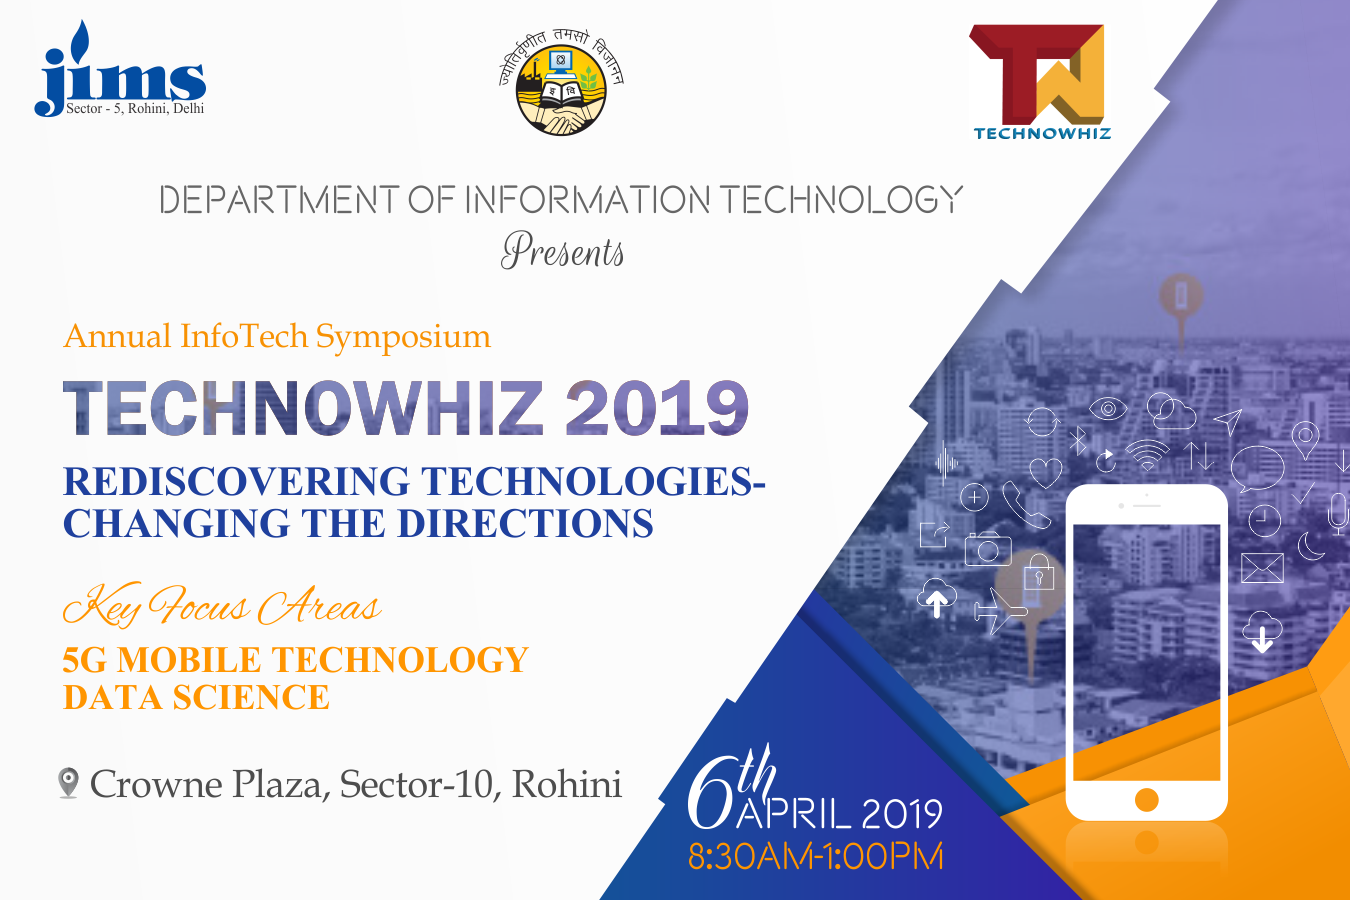 JIMS Rohini Presents Department of Information Technology organising Annual IT Seminar TechnoWhiz On Rediscovering Technologies- Changing the Directions Key focus areas- a. 5G Mobile Technology b. Data Science